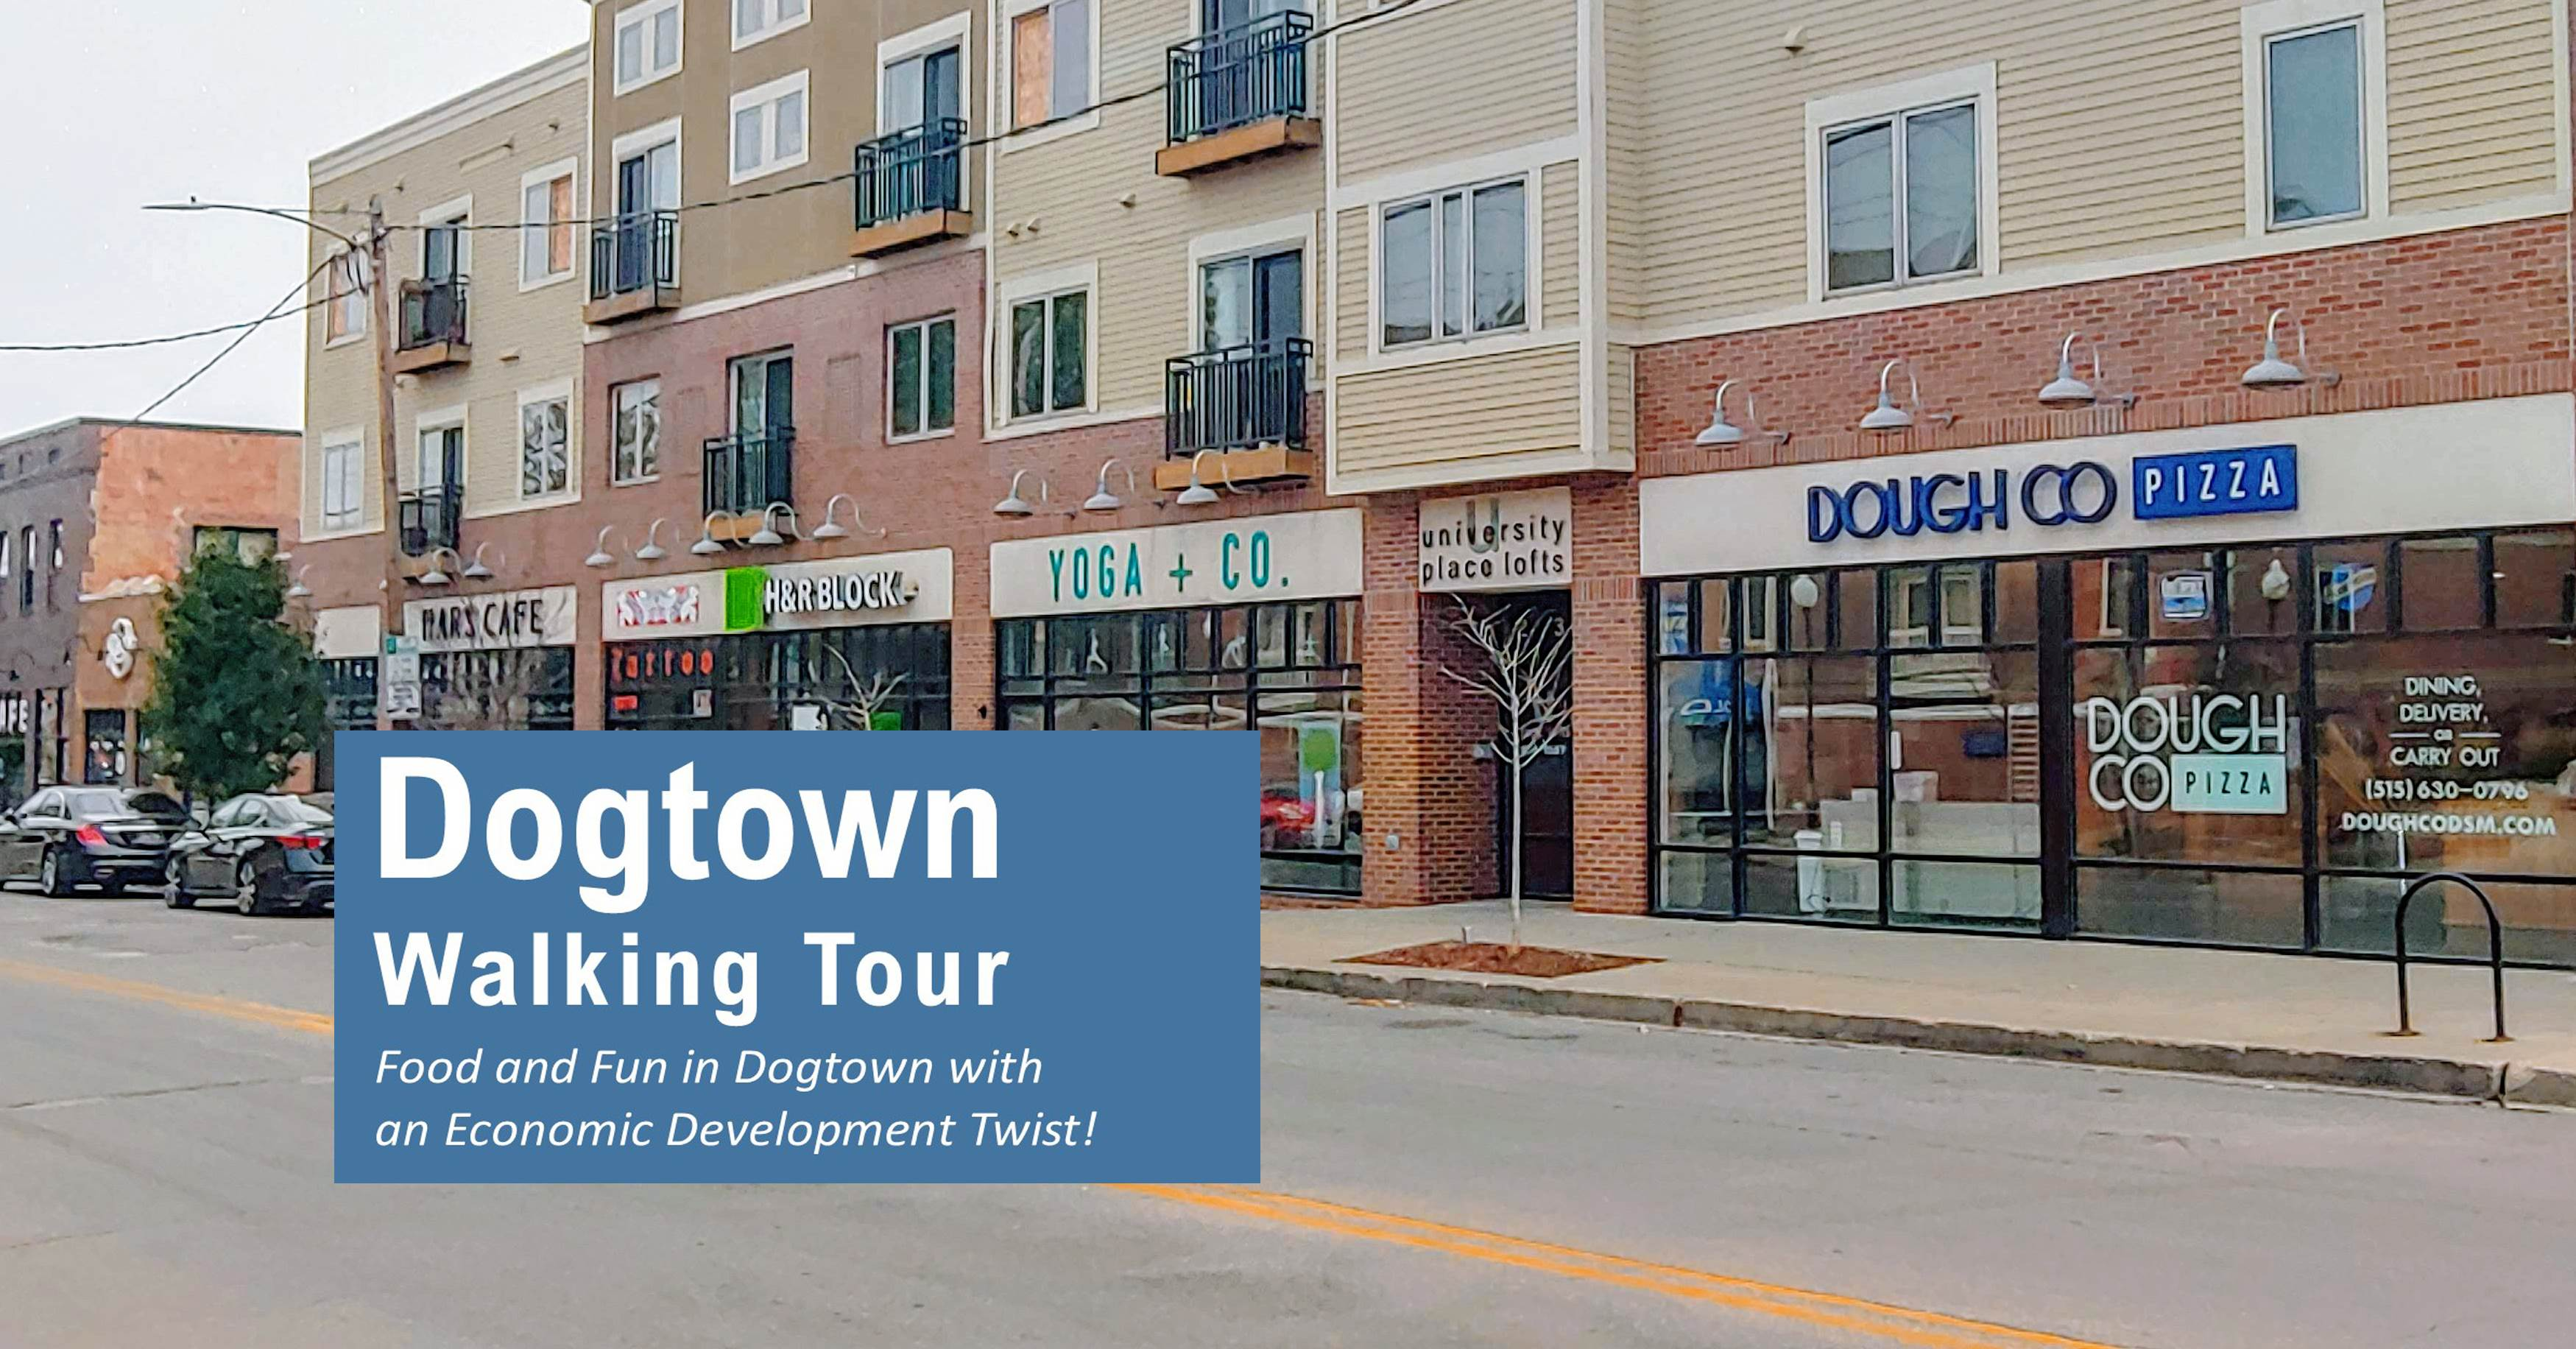 Dogtown Walking Tour in Des Moines